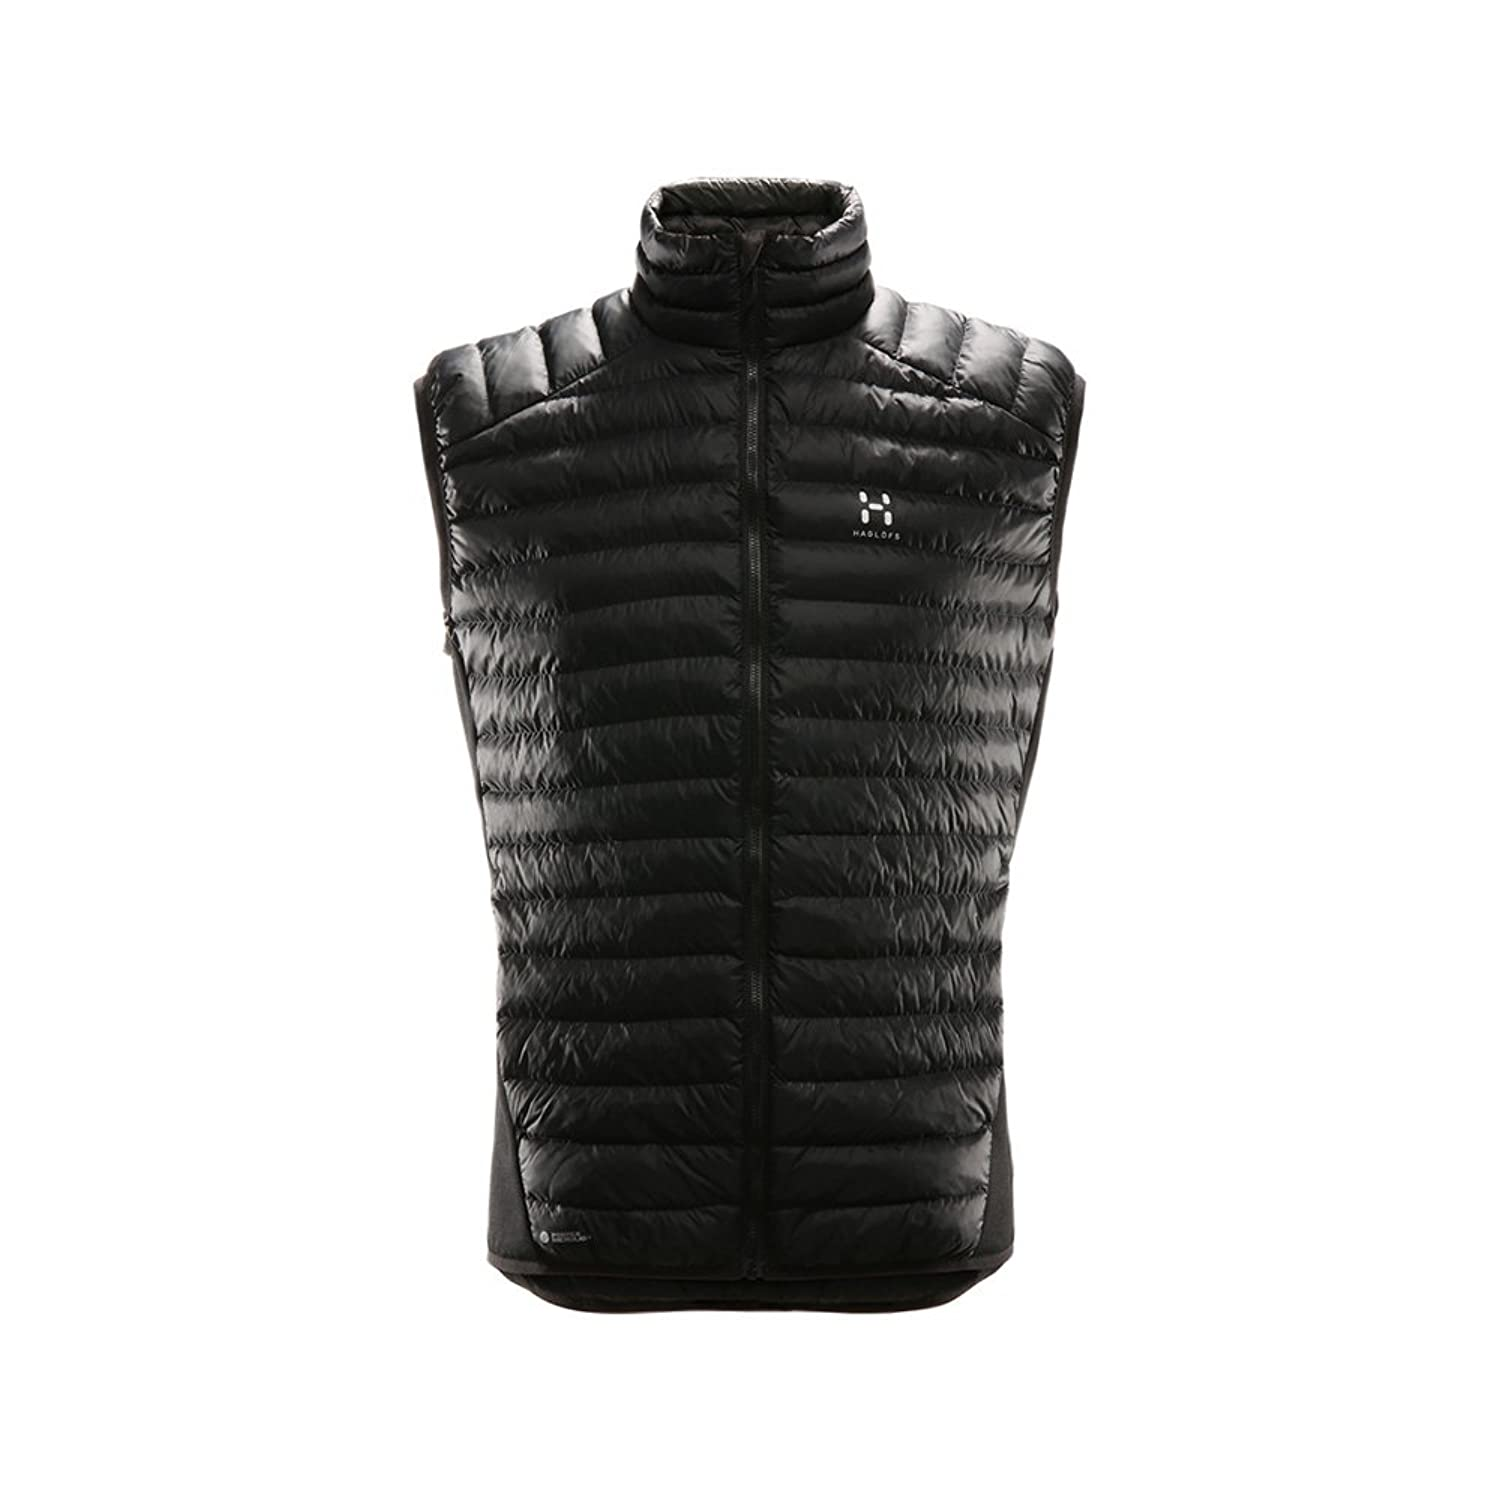 ESSENS MIMIC VEST Men's